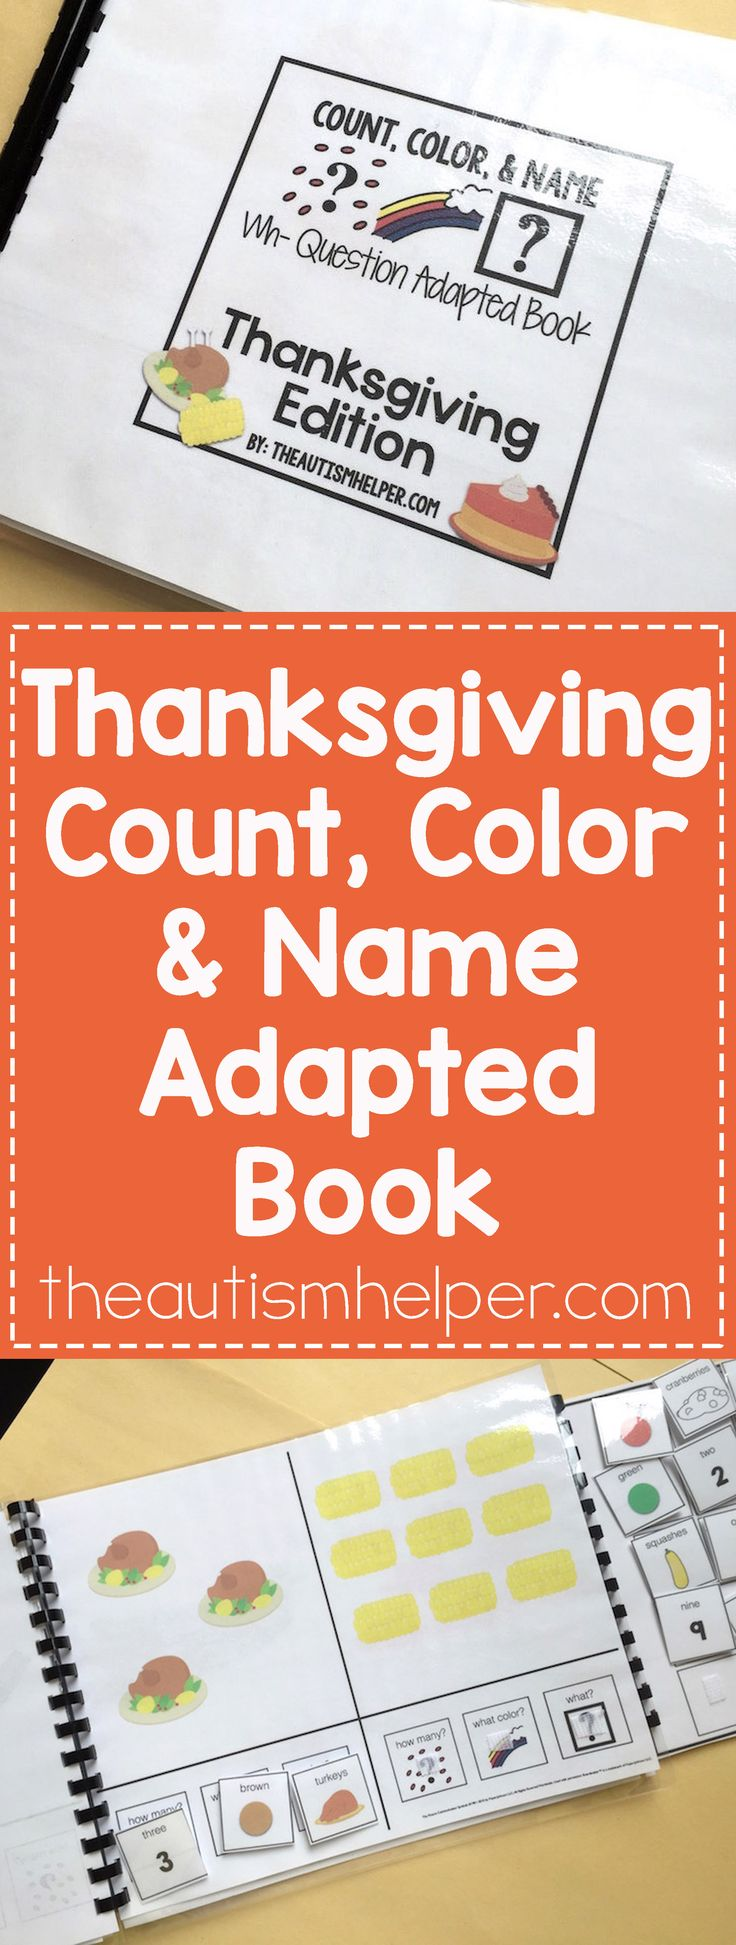 The Count, Color & Name Adapted books help you get to work on answering questions about how many, what color, & what all while building seasonal vocabulary! From the autismhelper.com #theautismhelper